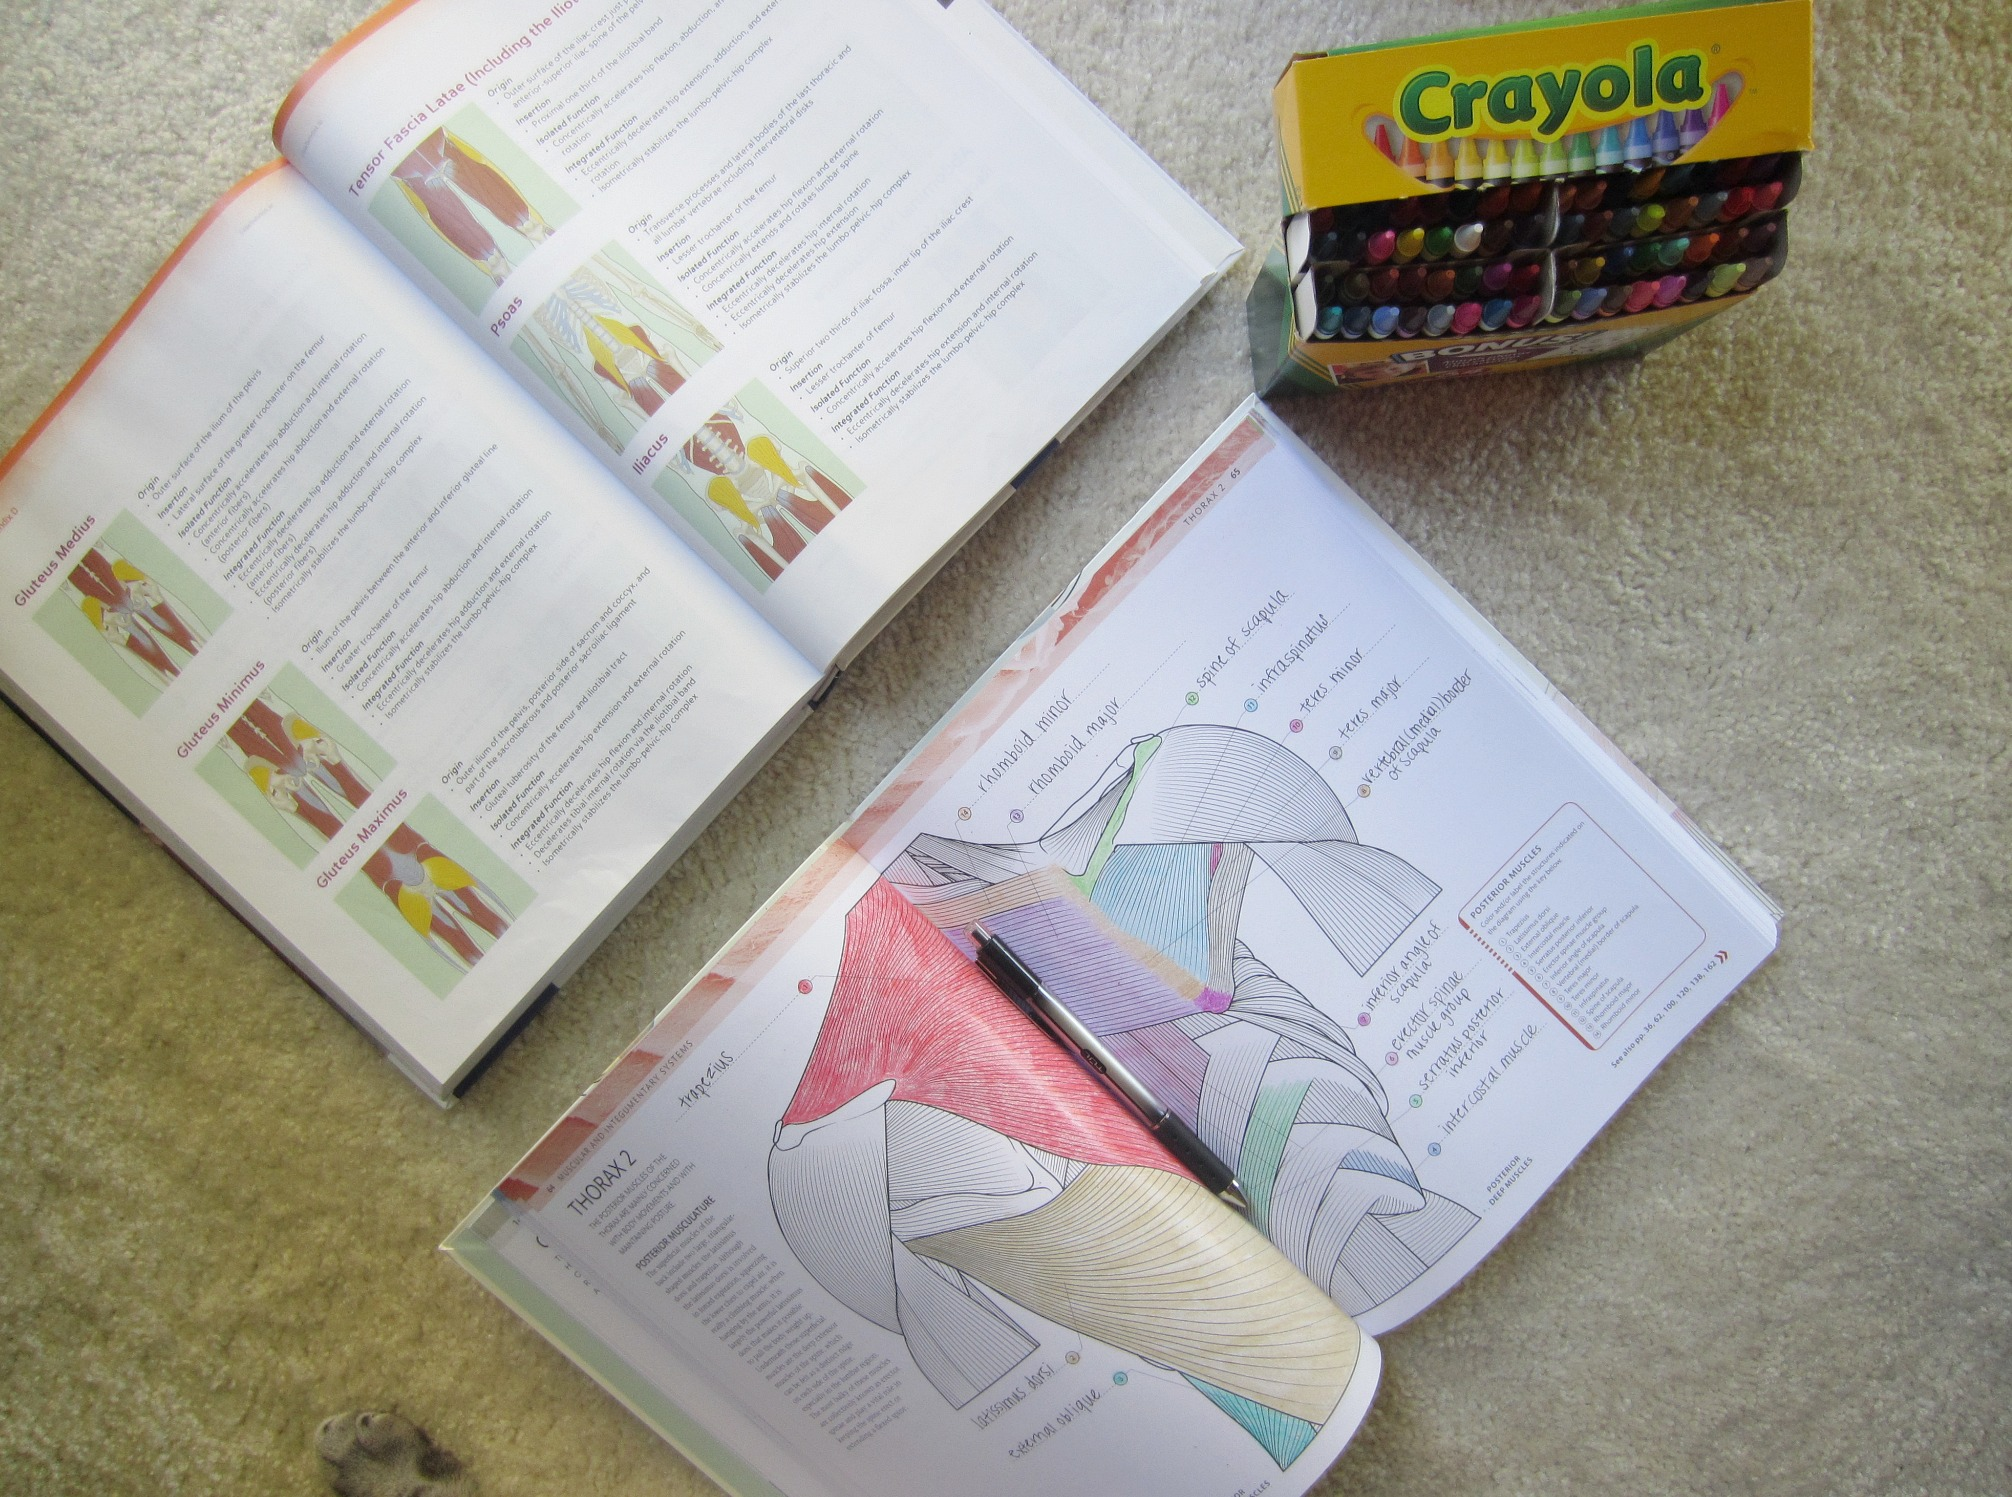 Anatomy Coloring Book and crayons